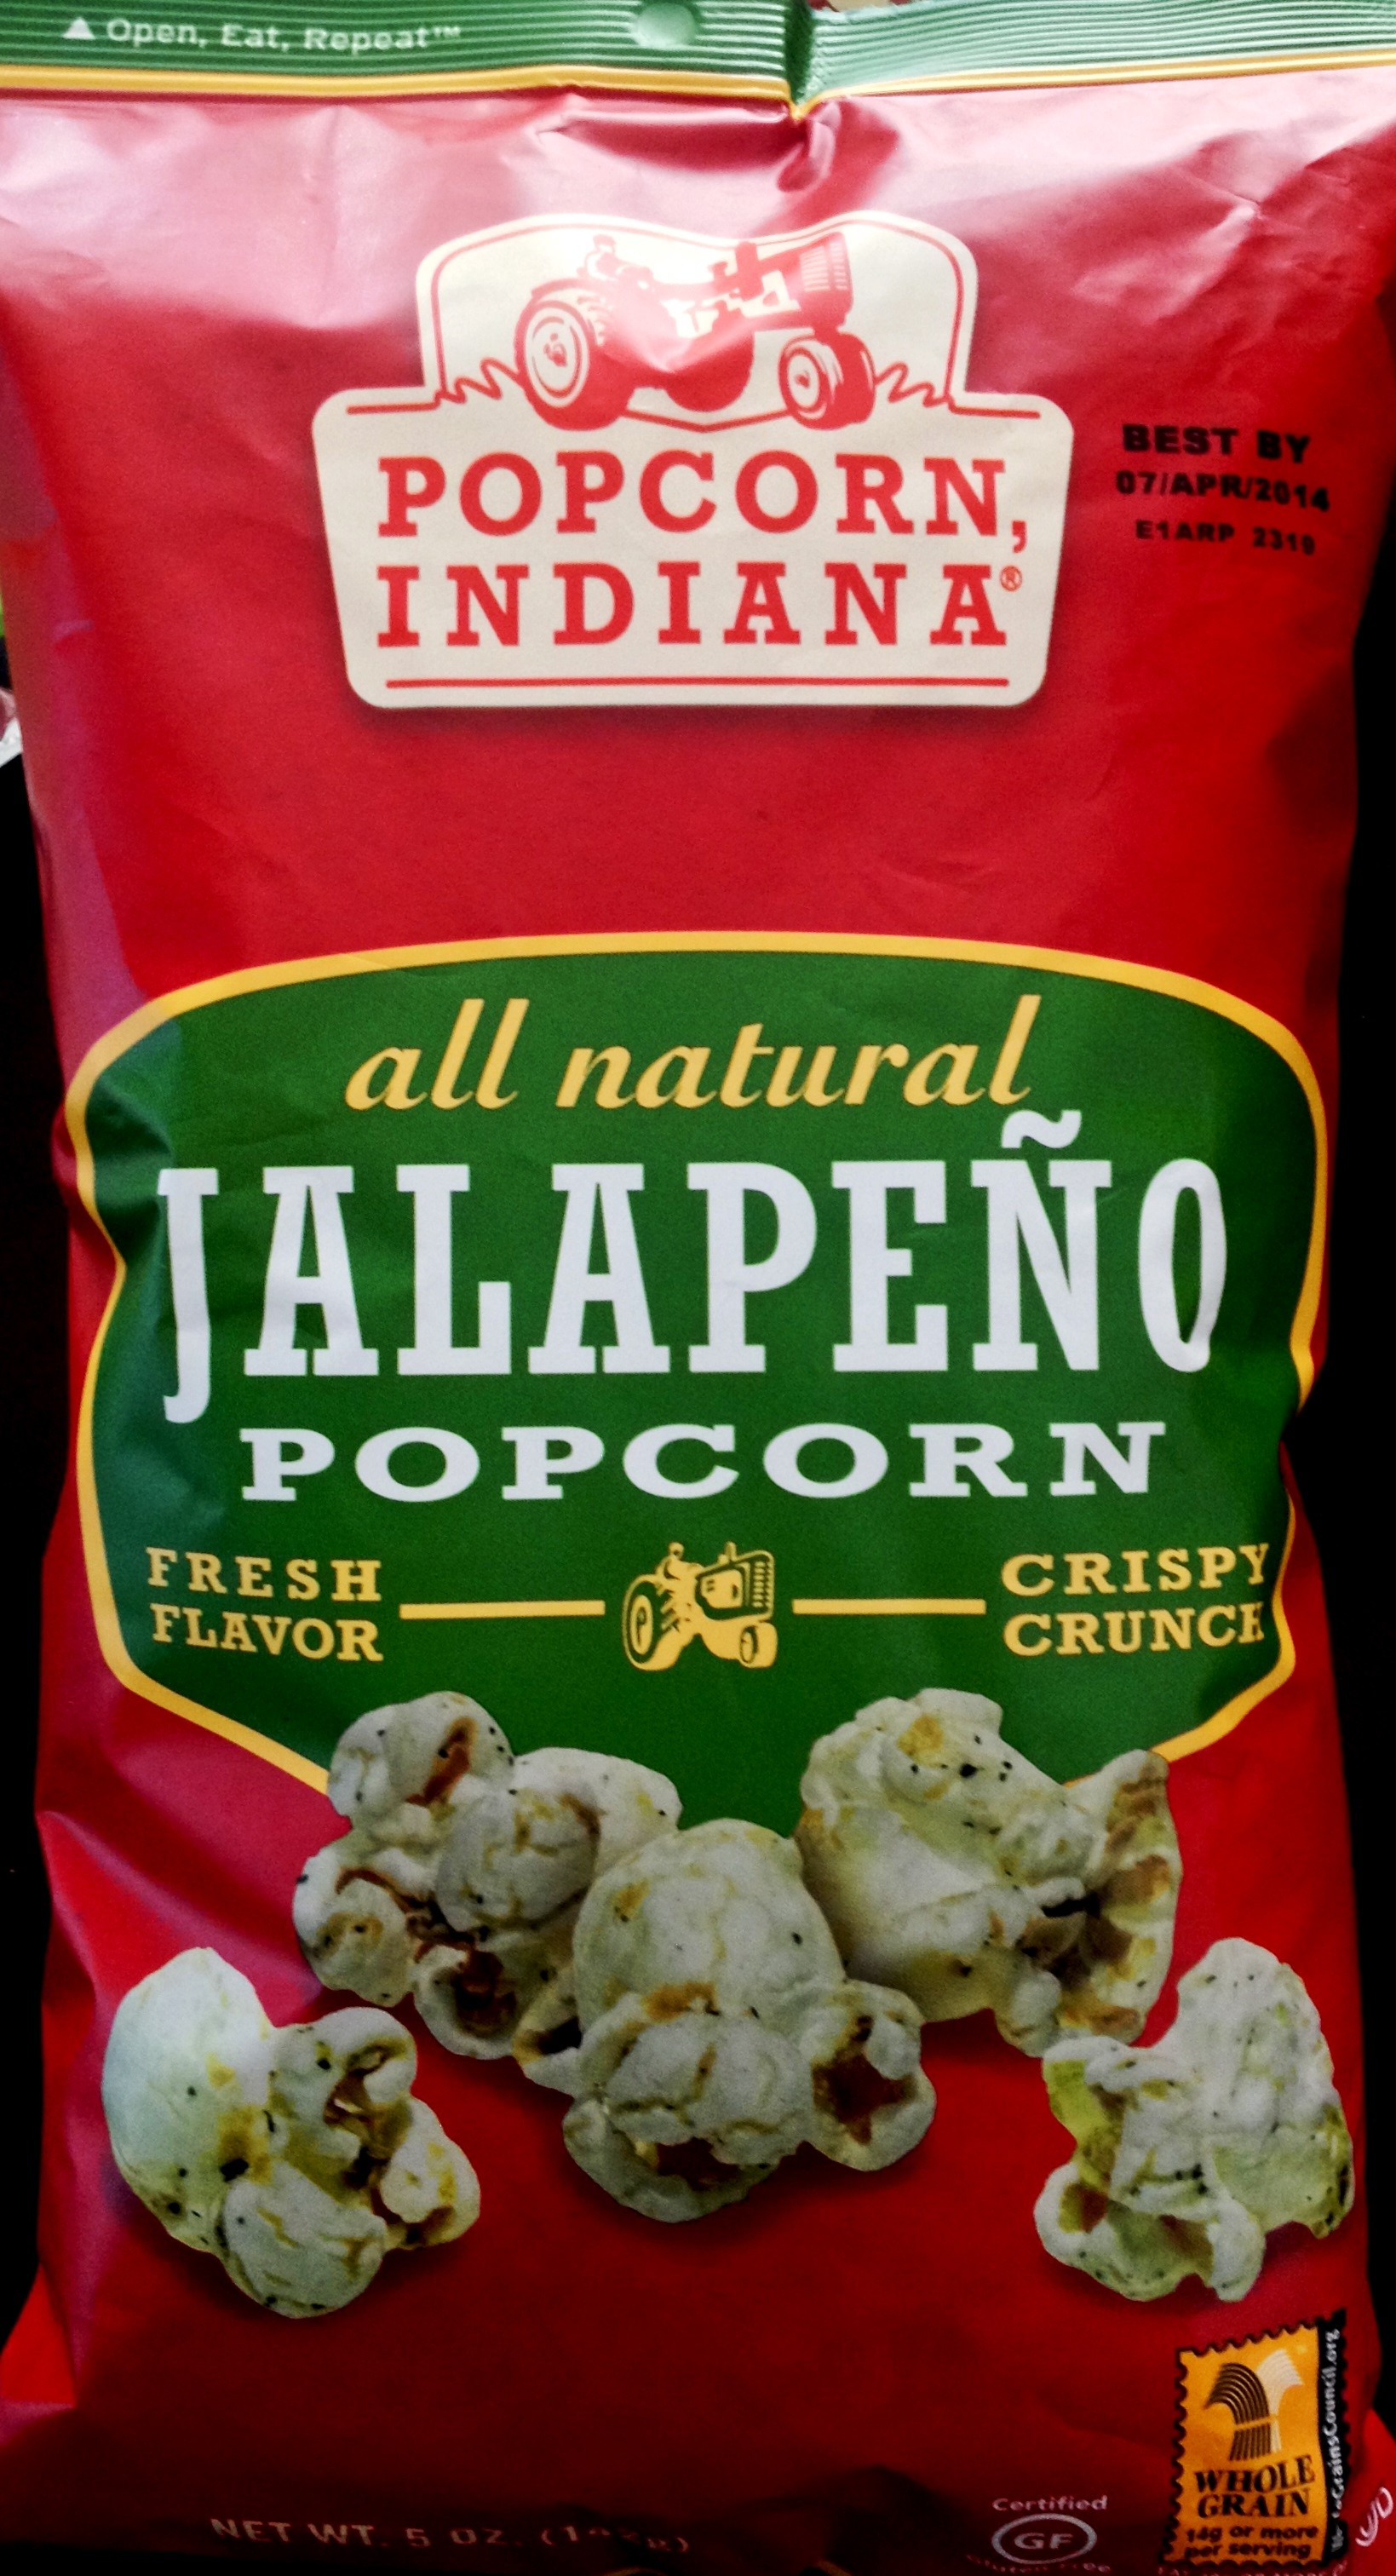 REVIEW: Popcorn, Indiana – Jalapeno Popcorn | Chip Review